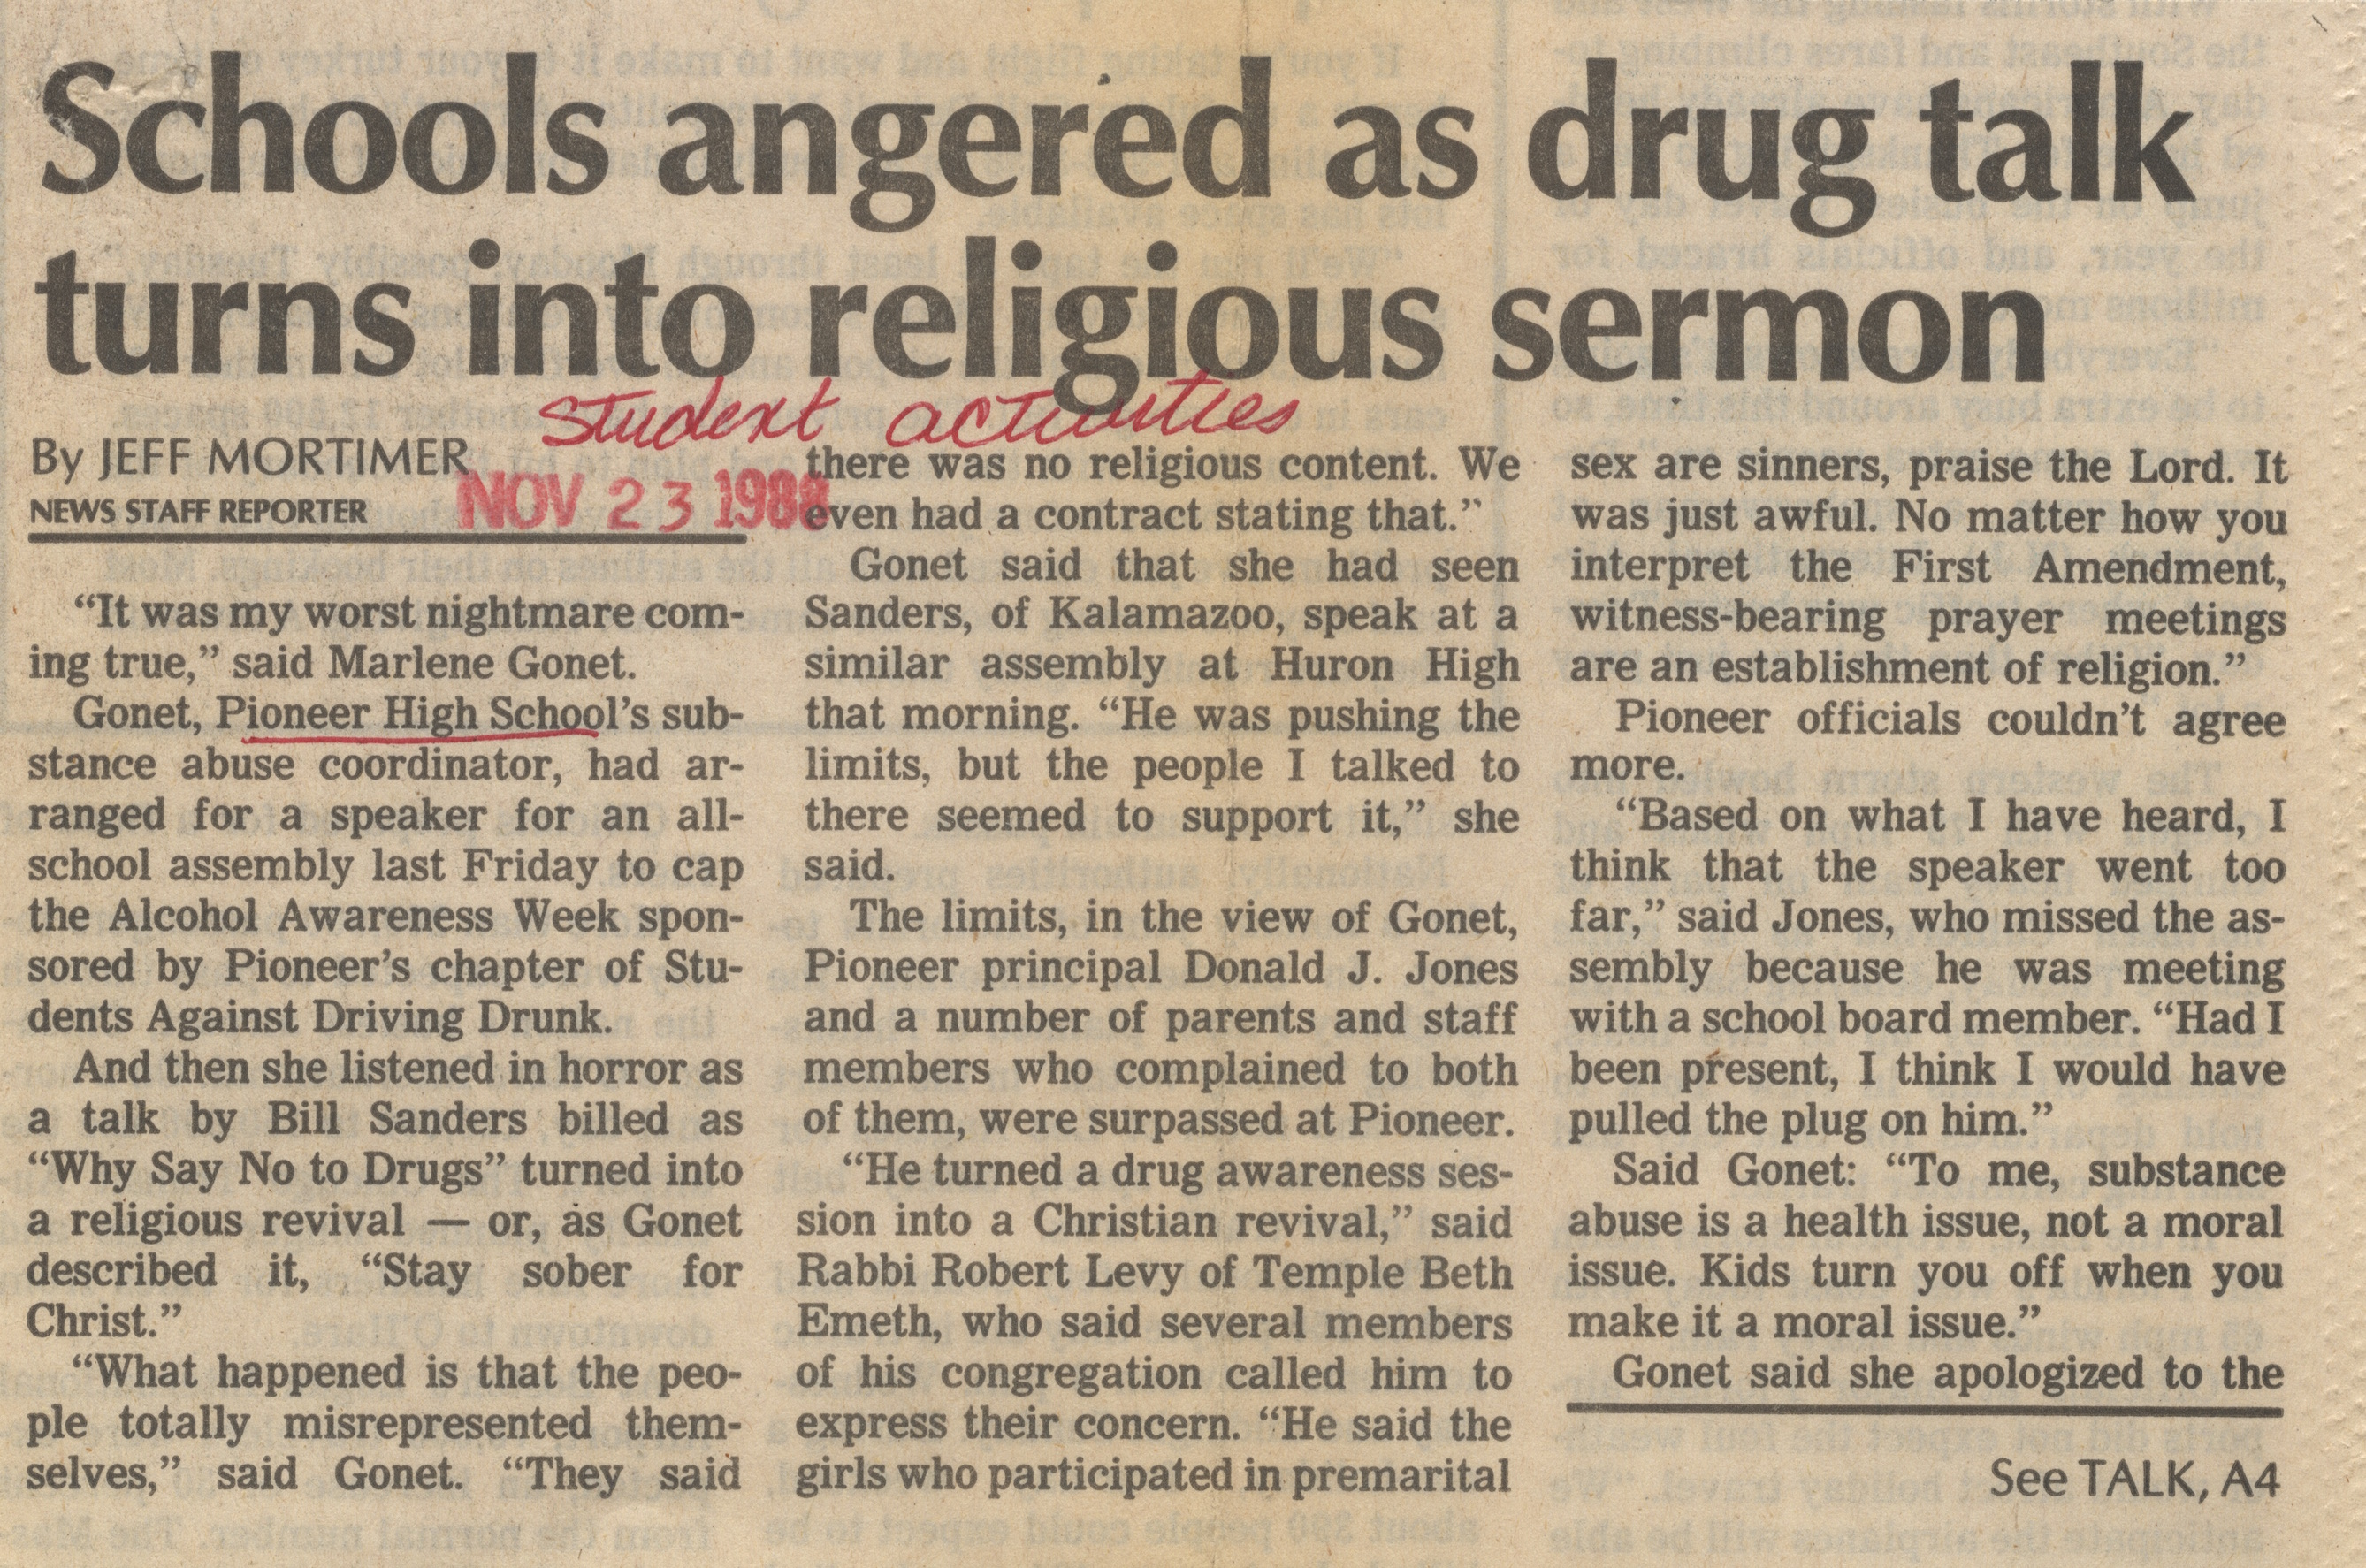 Schools Angered As Drug Talk Turns Into Religious Sermon image